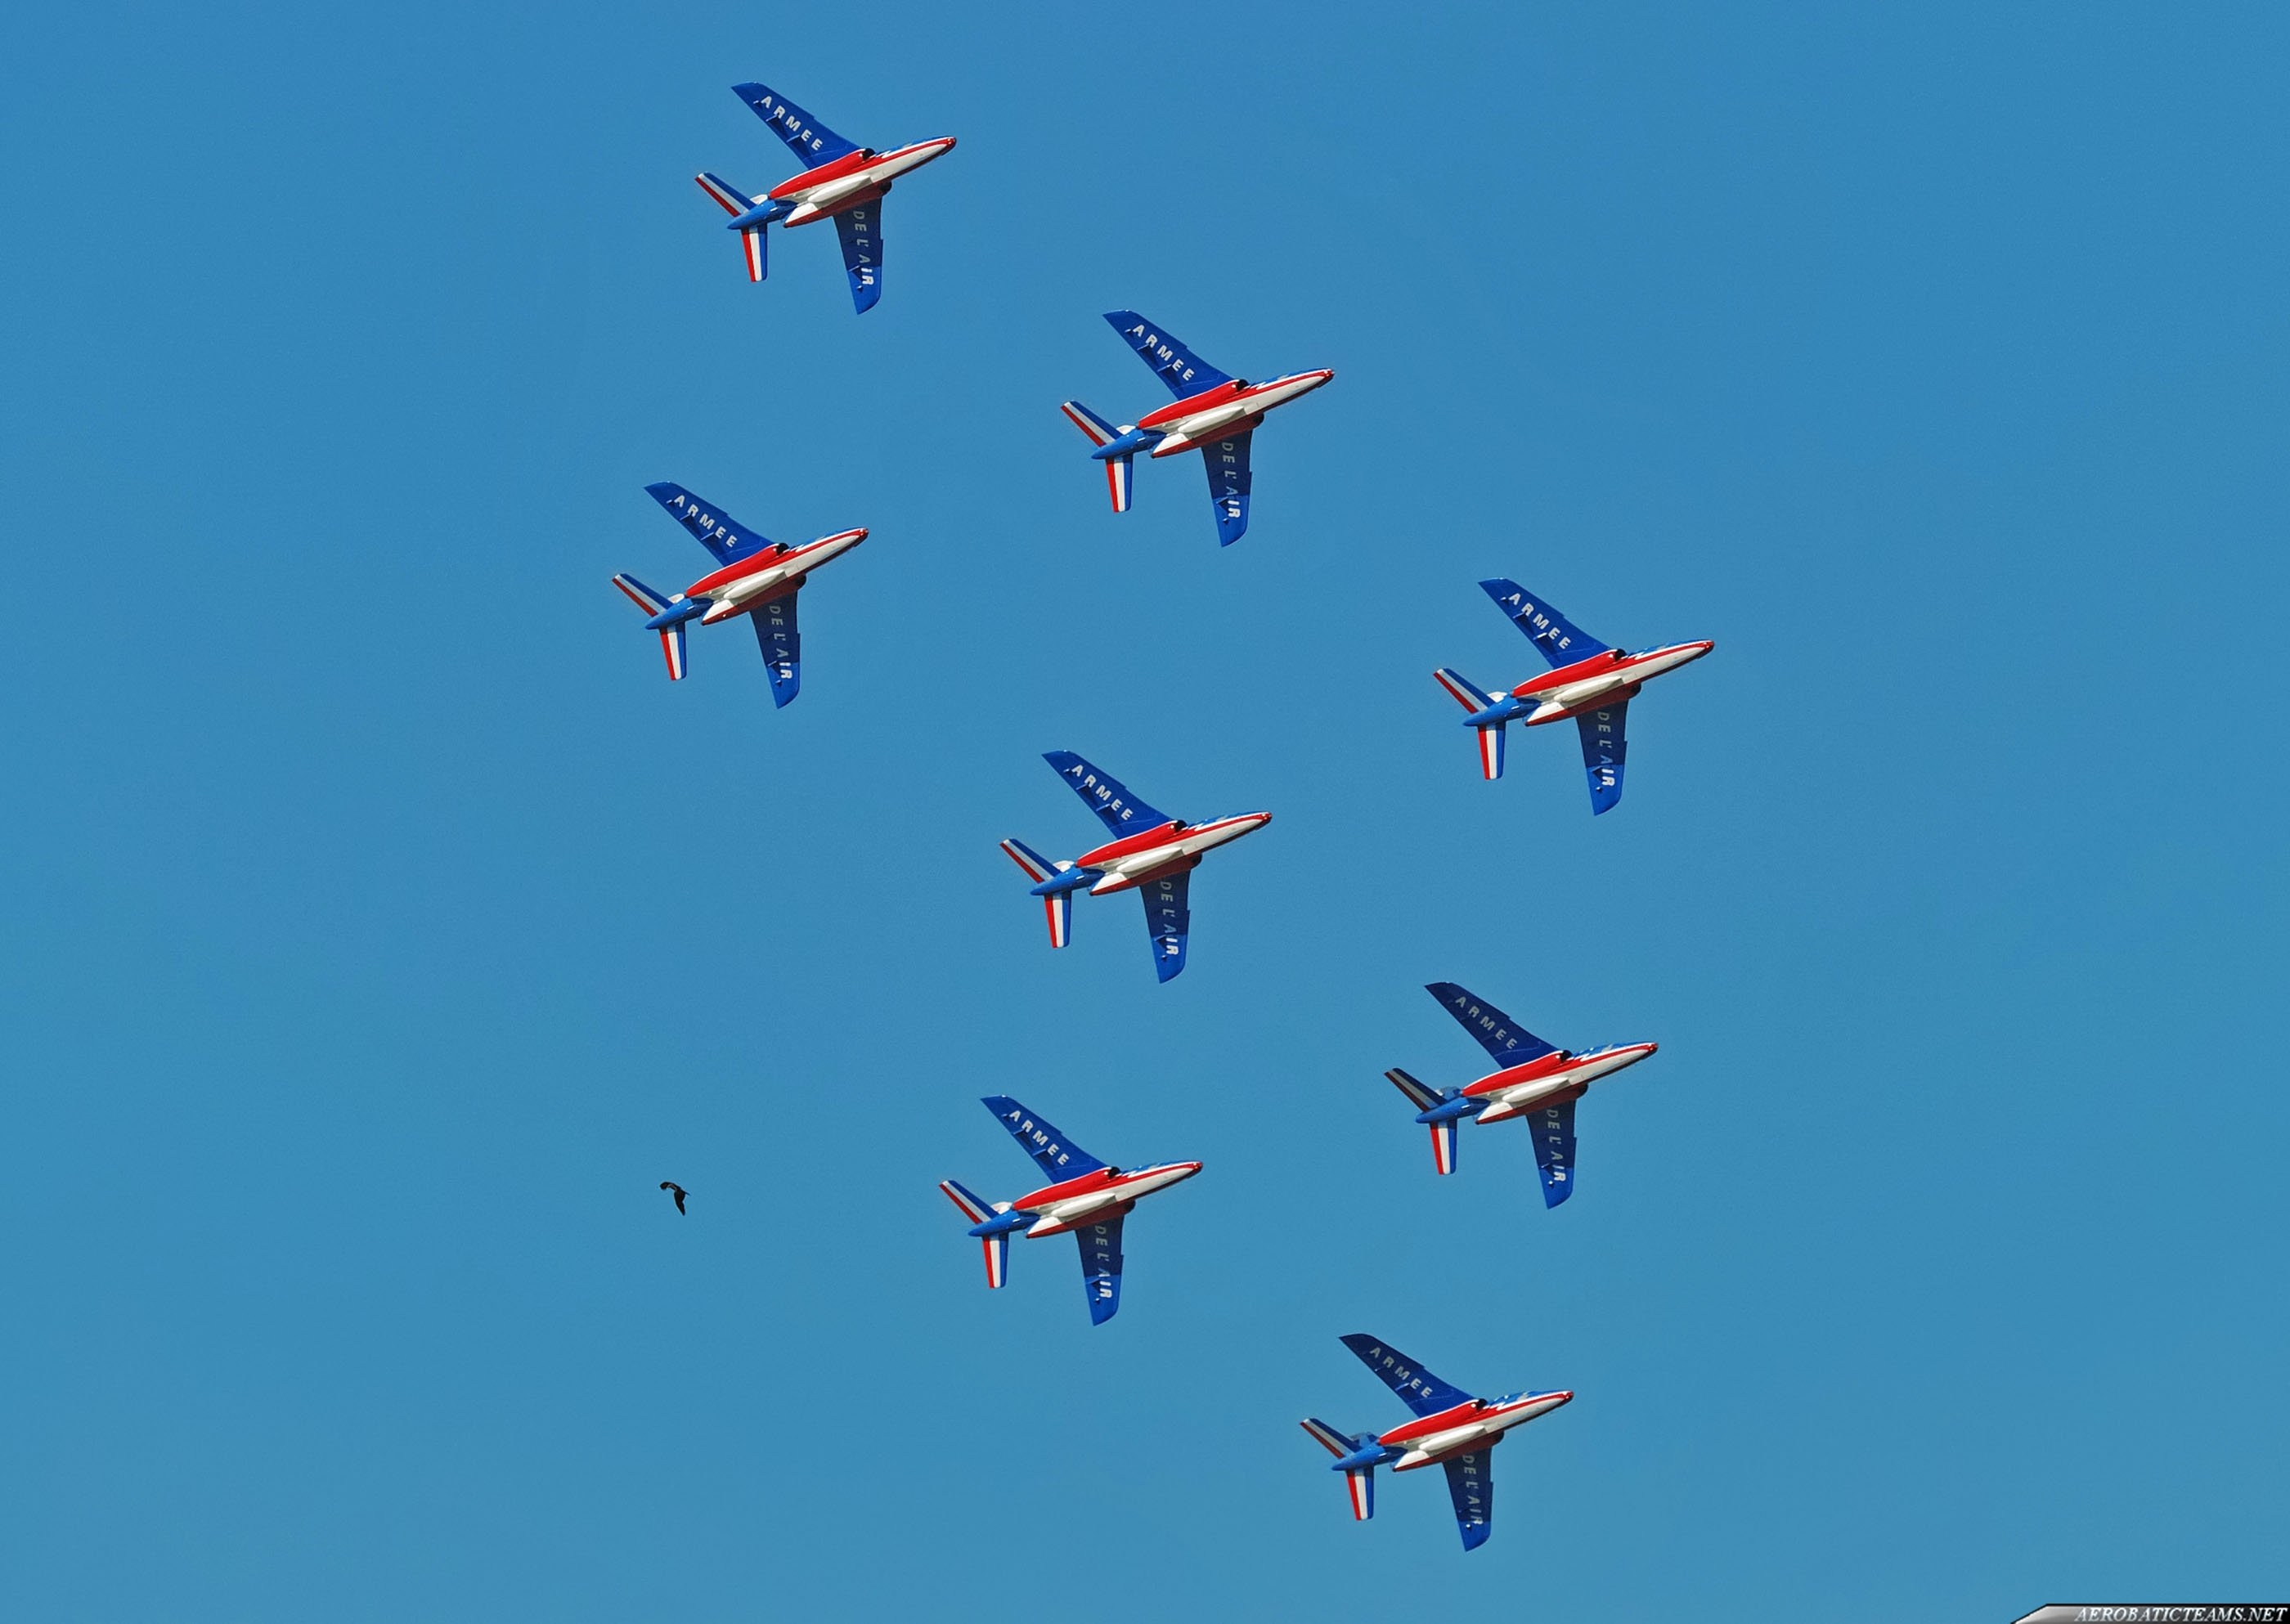 Patrouille de France vs bird